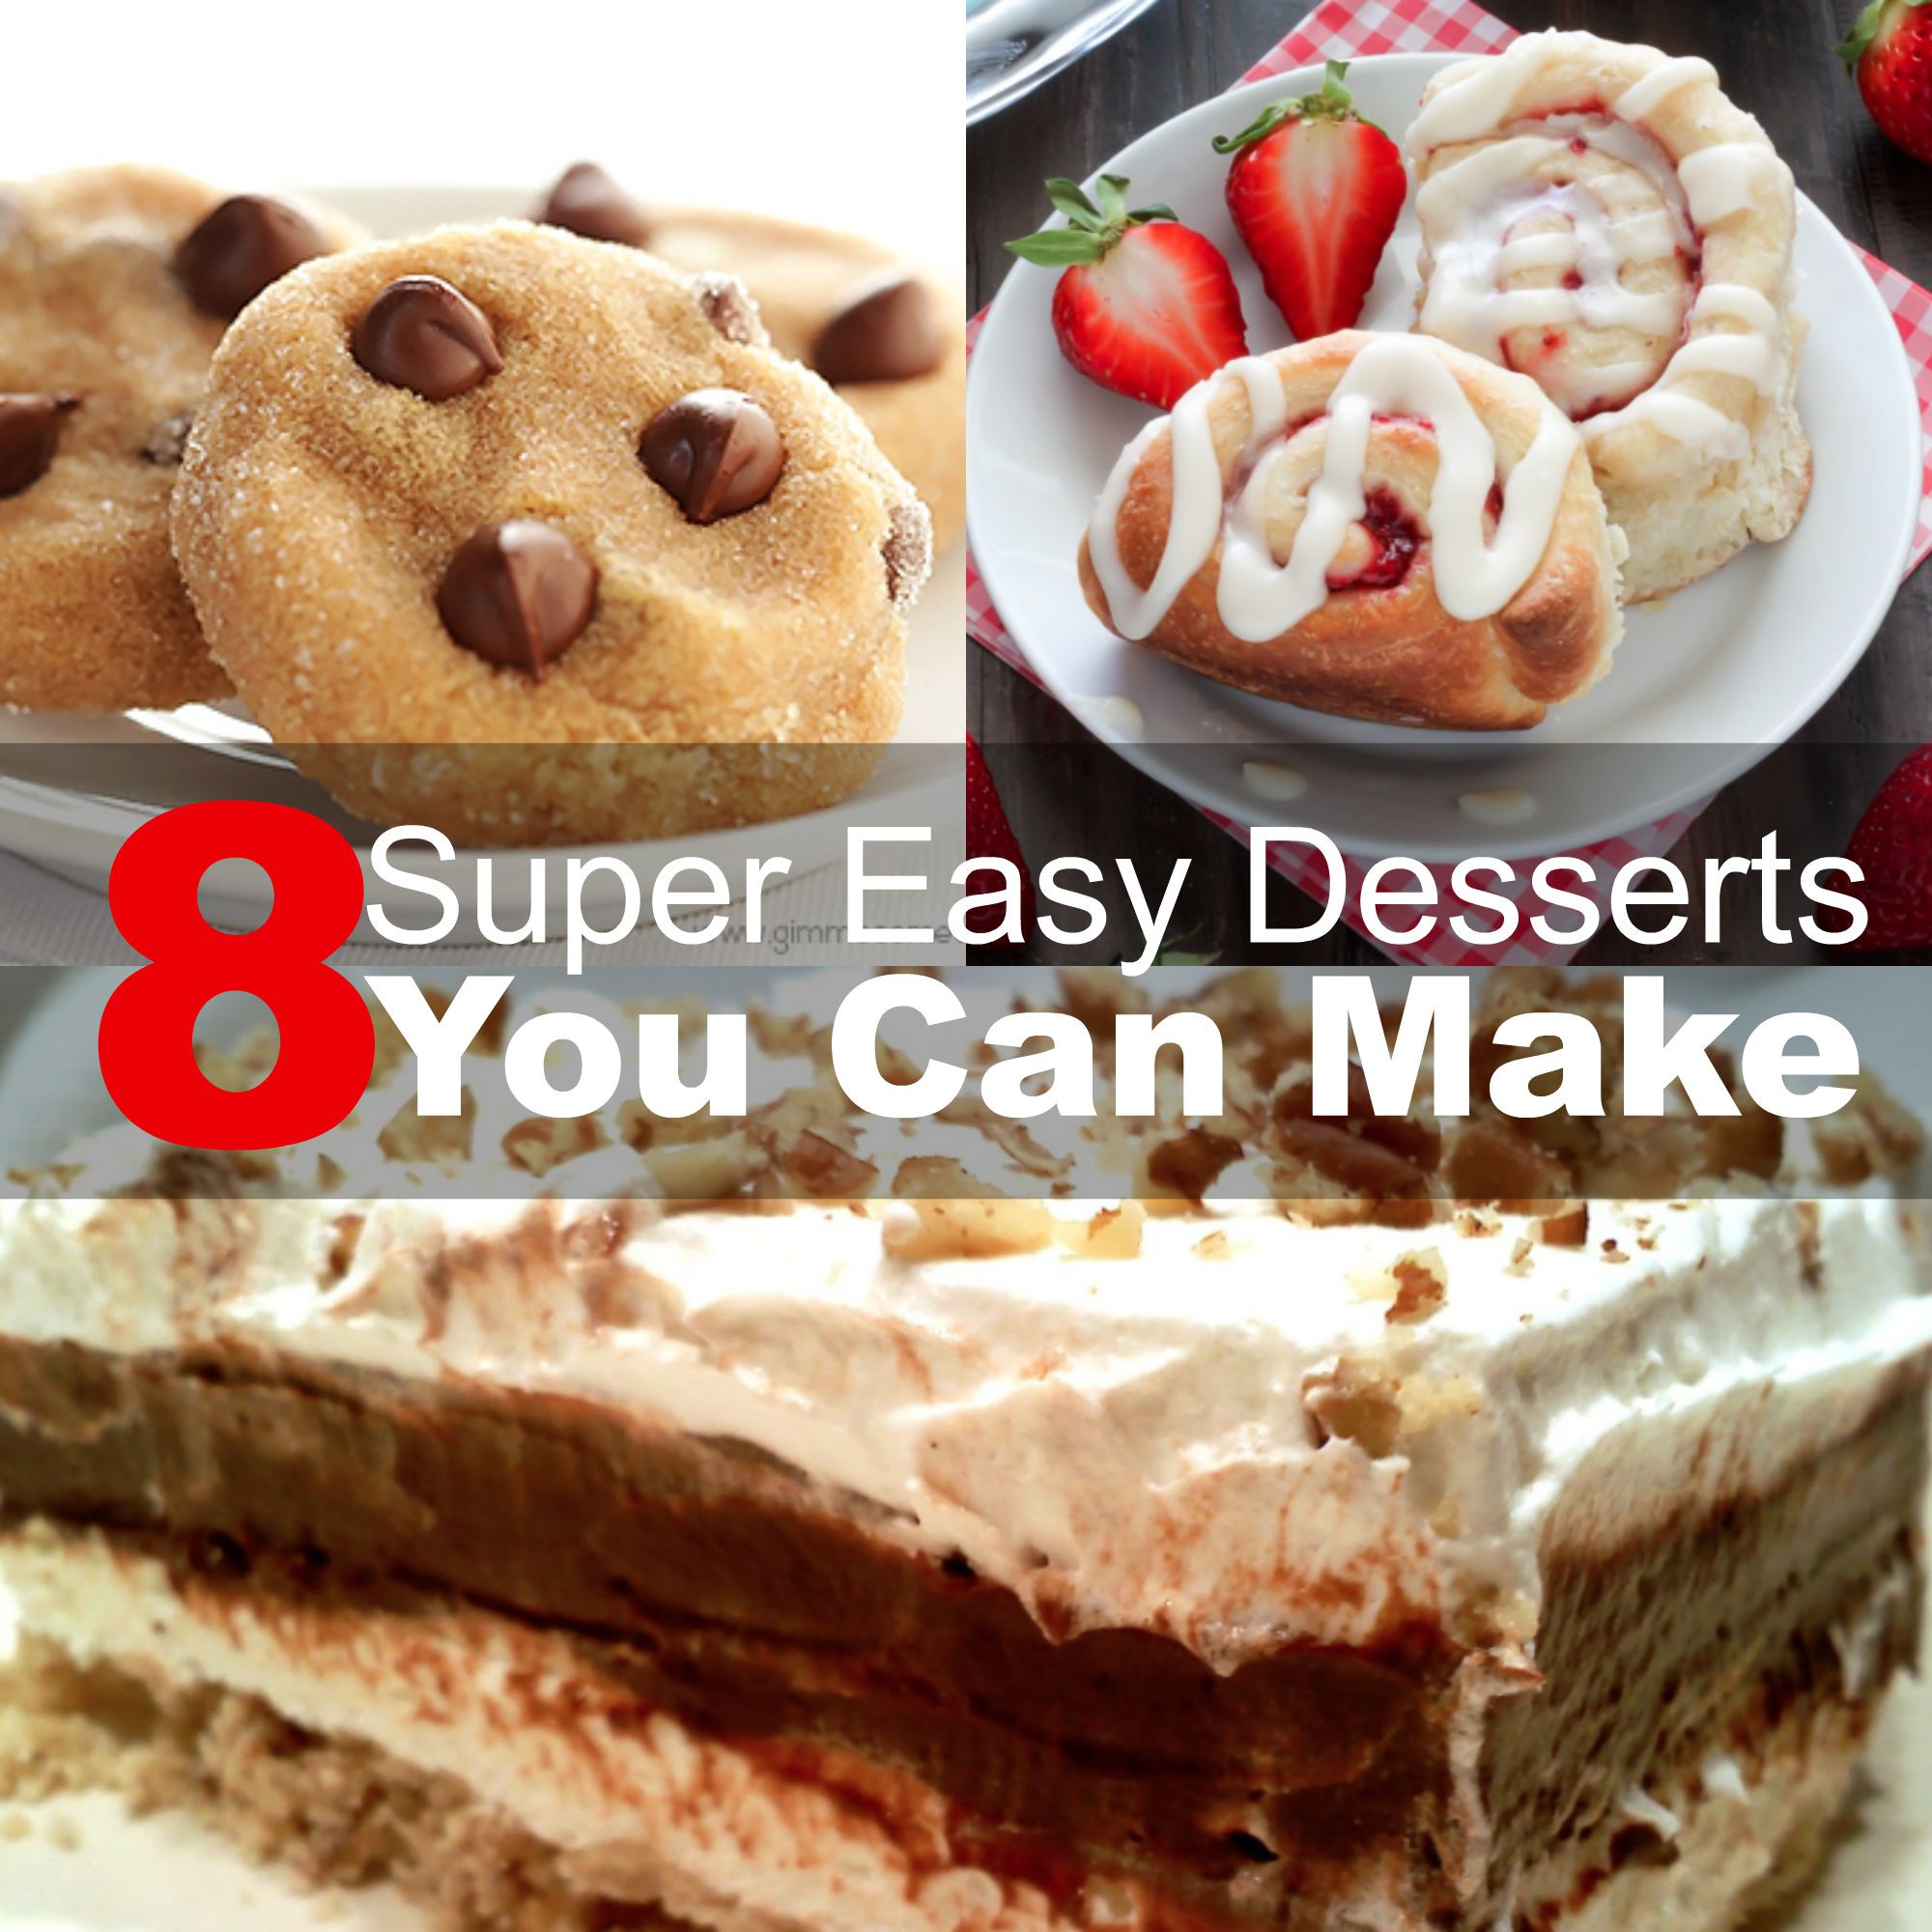 Easiest Desserts To Make  8 Super Easy Desserts You Can Make